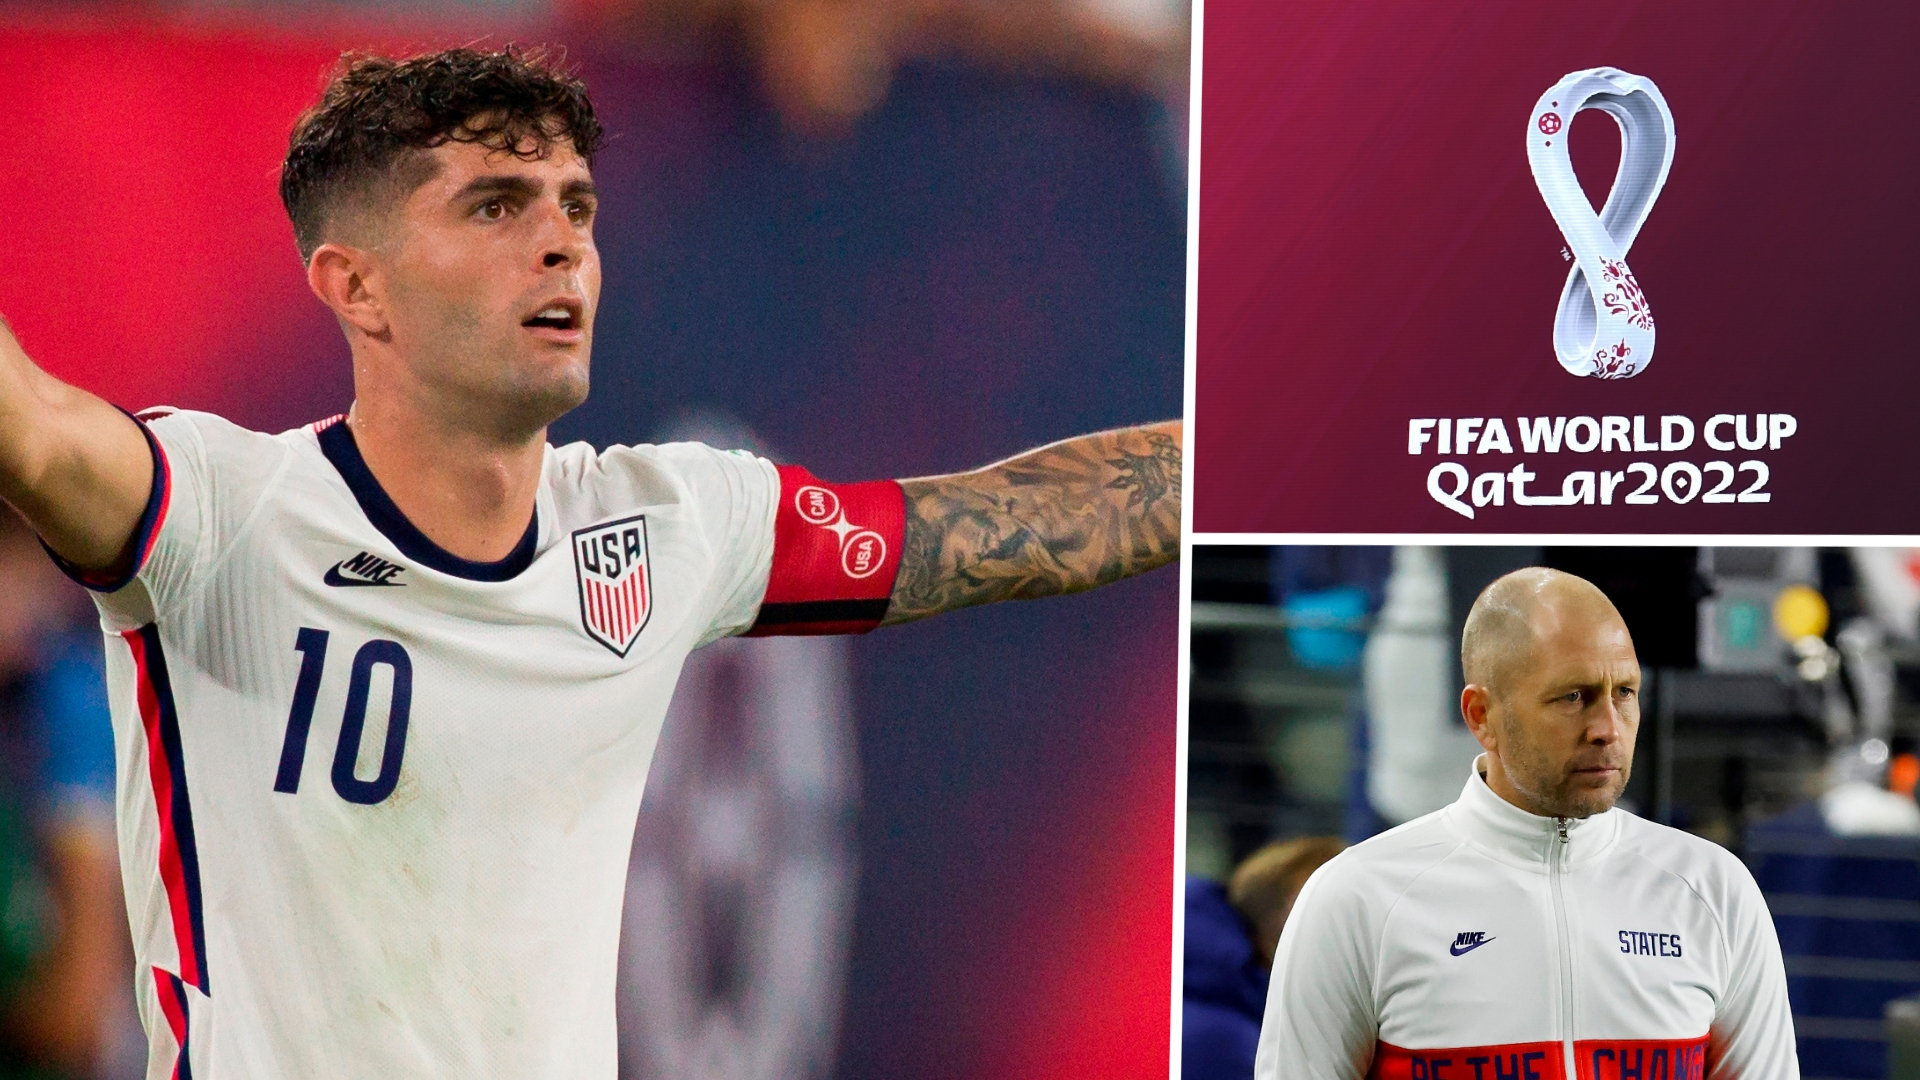 USMNT World Cup 2022 qualifying: Group, fixtures, results & everything you need to know